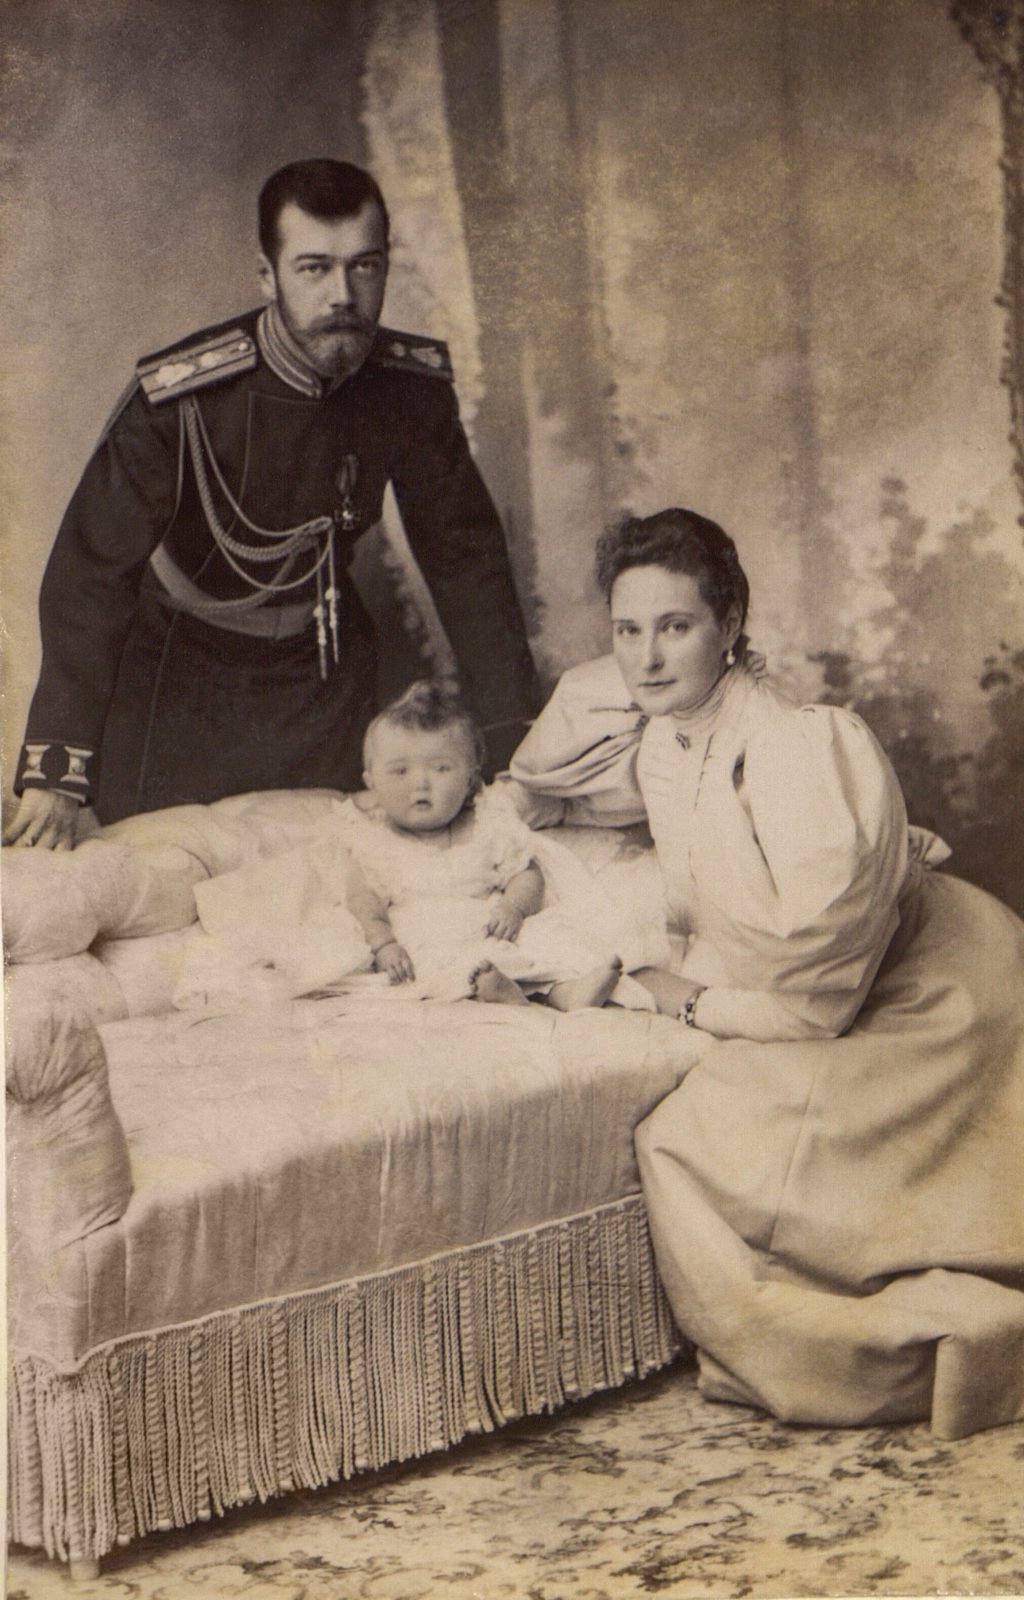 Emperor Nicholas II and Empress Alexandra Feodorovna with her daughter Grand Duchess Olga Nikolaevna. 1896 year.